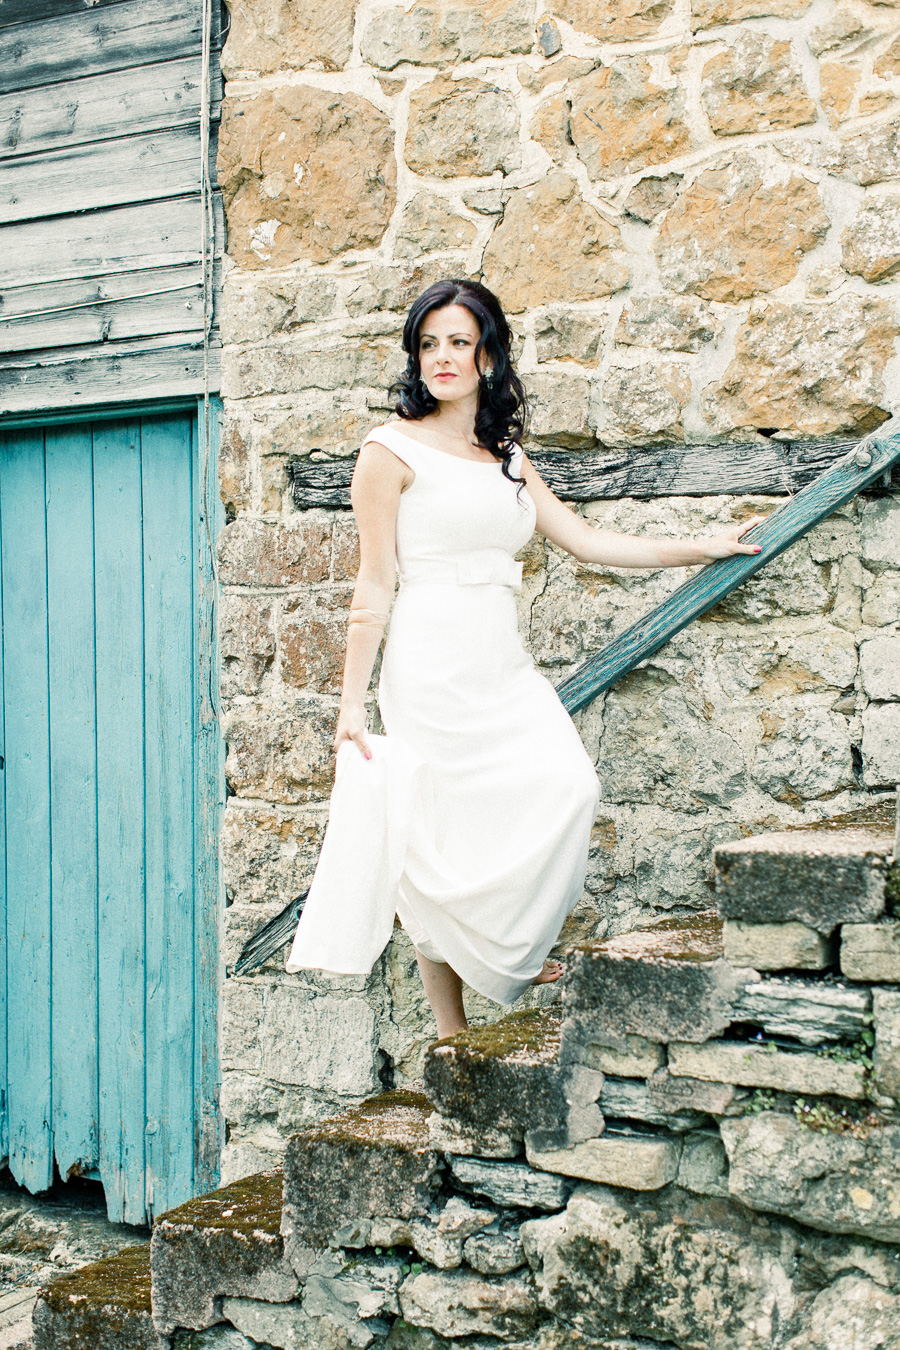 Jordans Courtyard rustic wedding styling ideas with images by Liz Baker Photography (40)